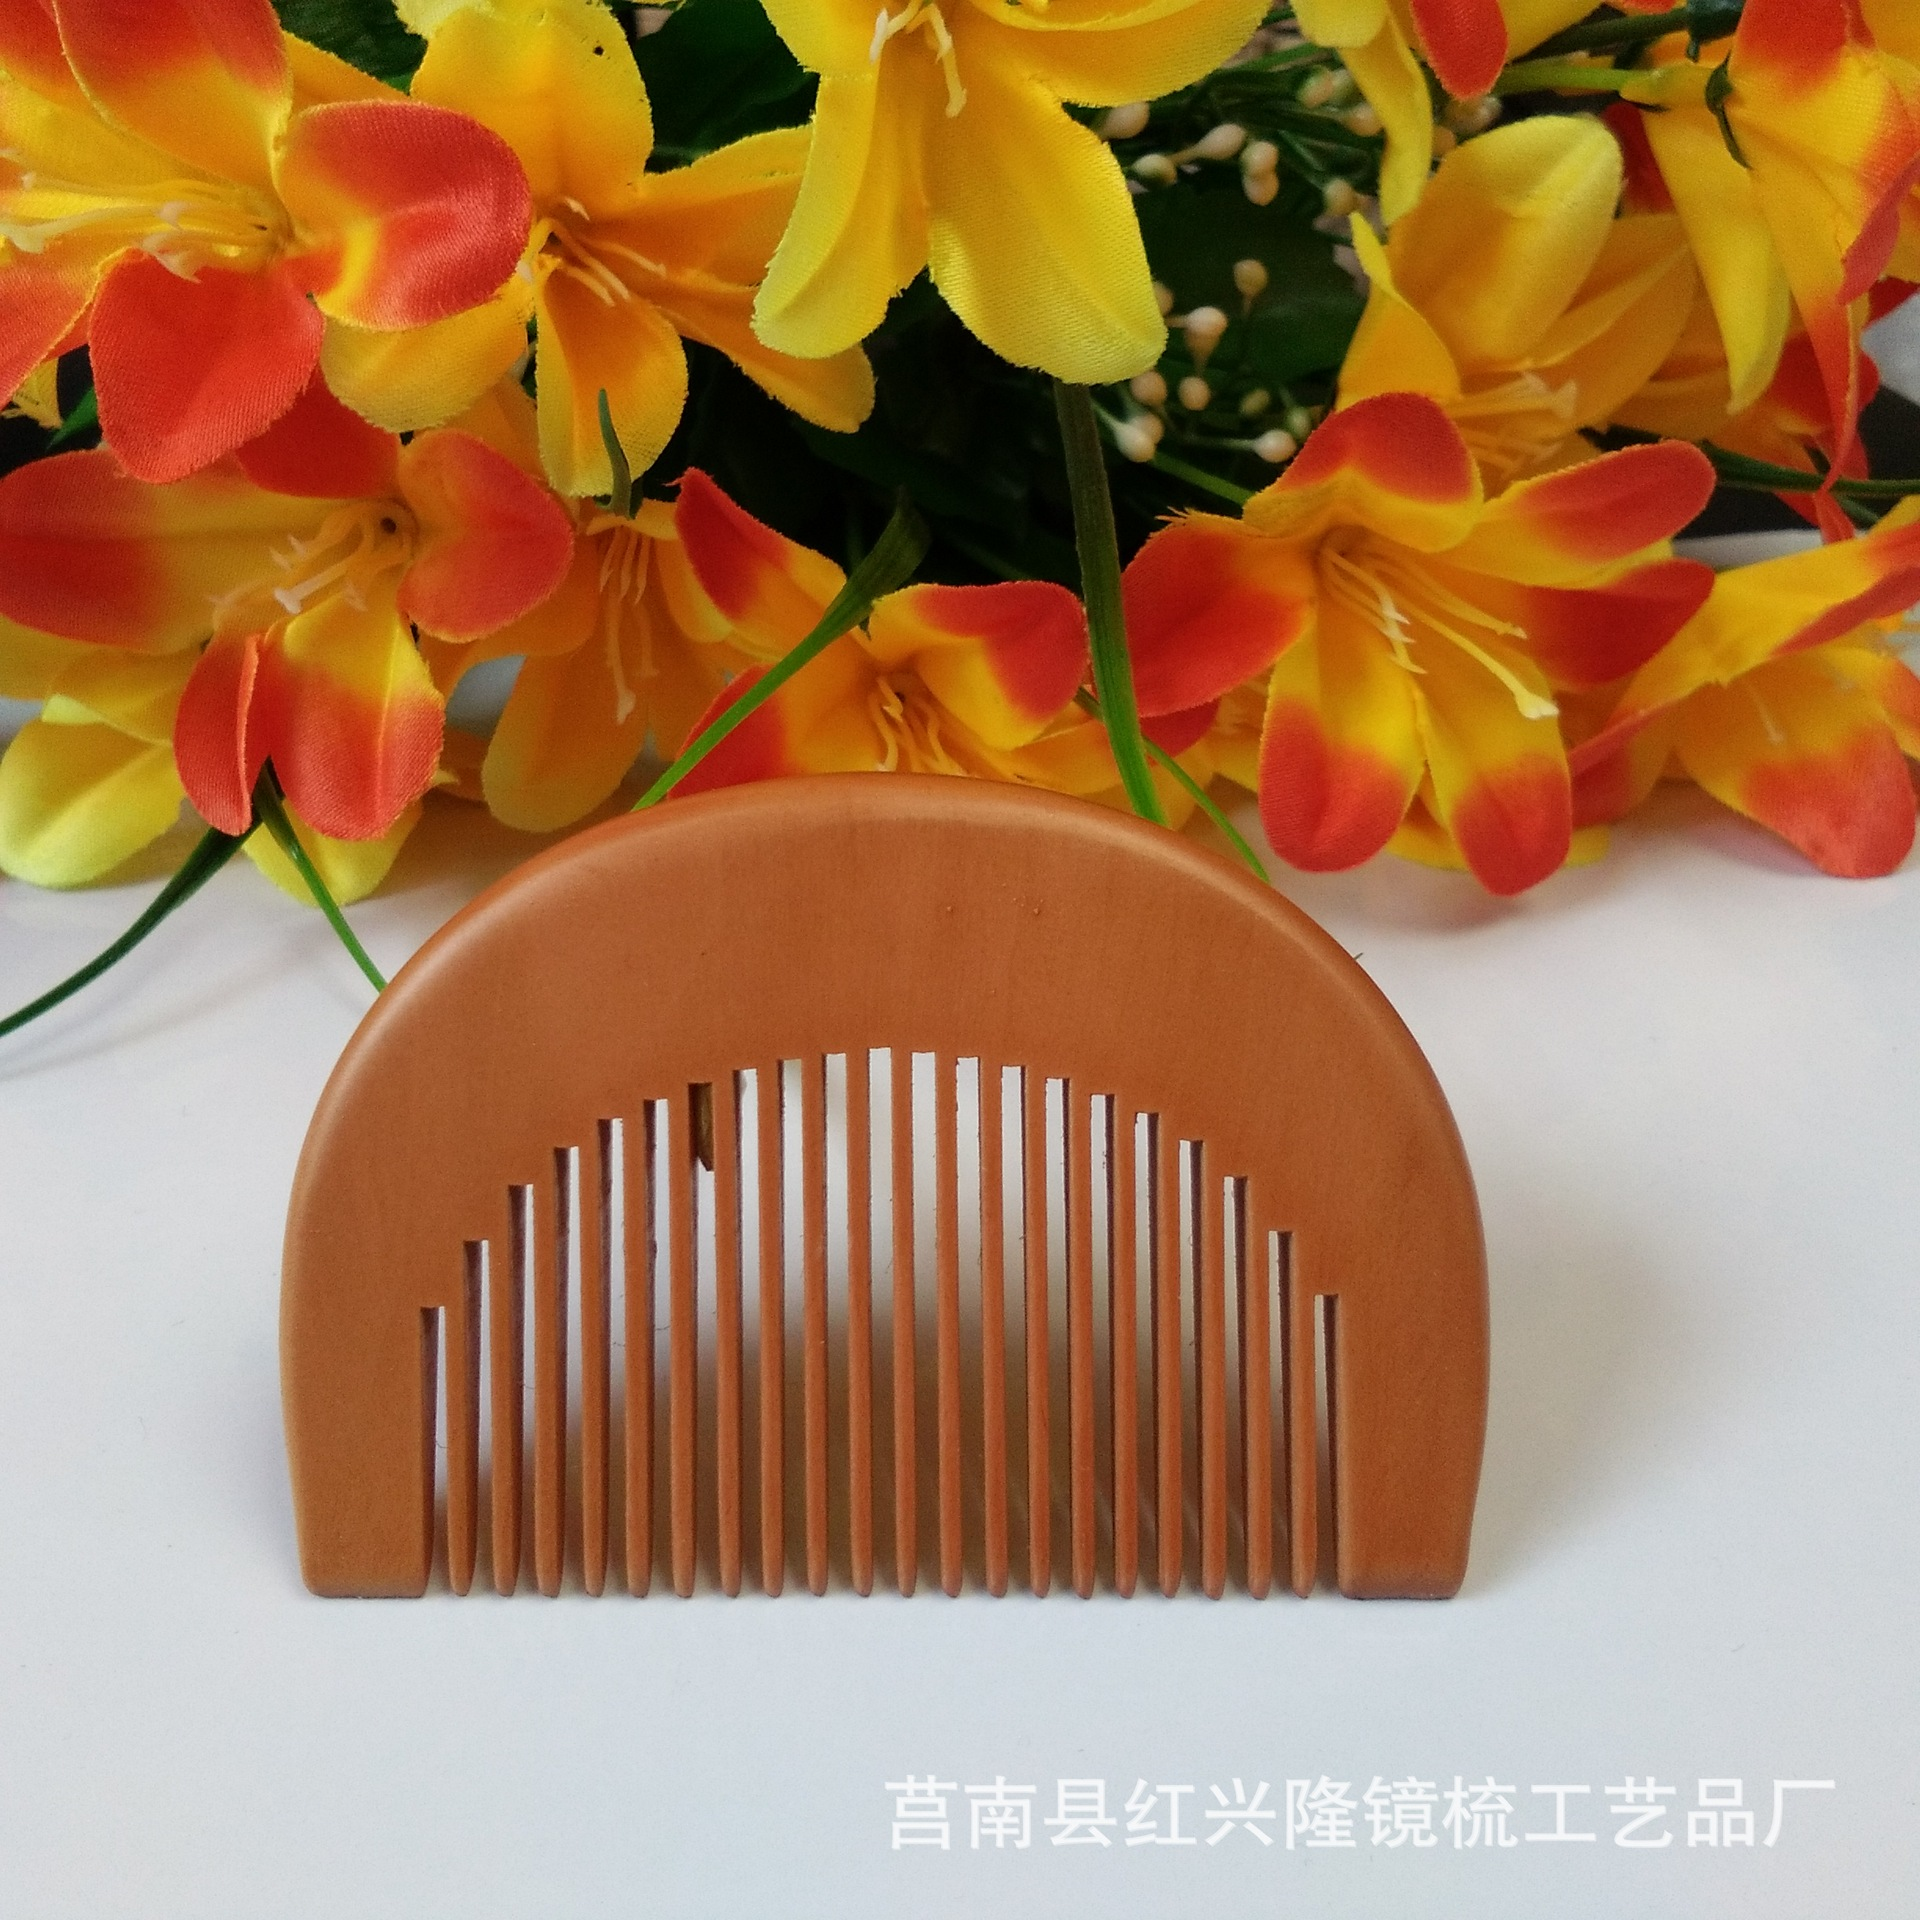 C23 peach wood comb custom LOGO tooth wood comb anti-static peach wood comb c62 anti static peach wood comb sandalwood wide tooth comb hair comb